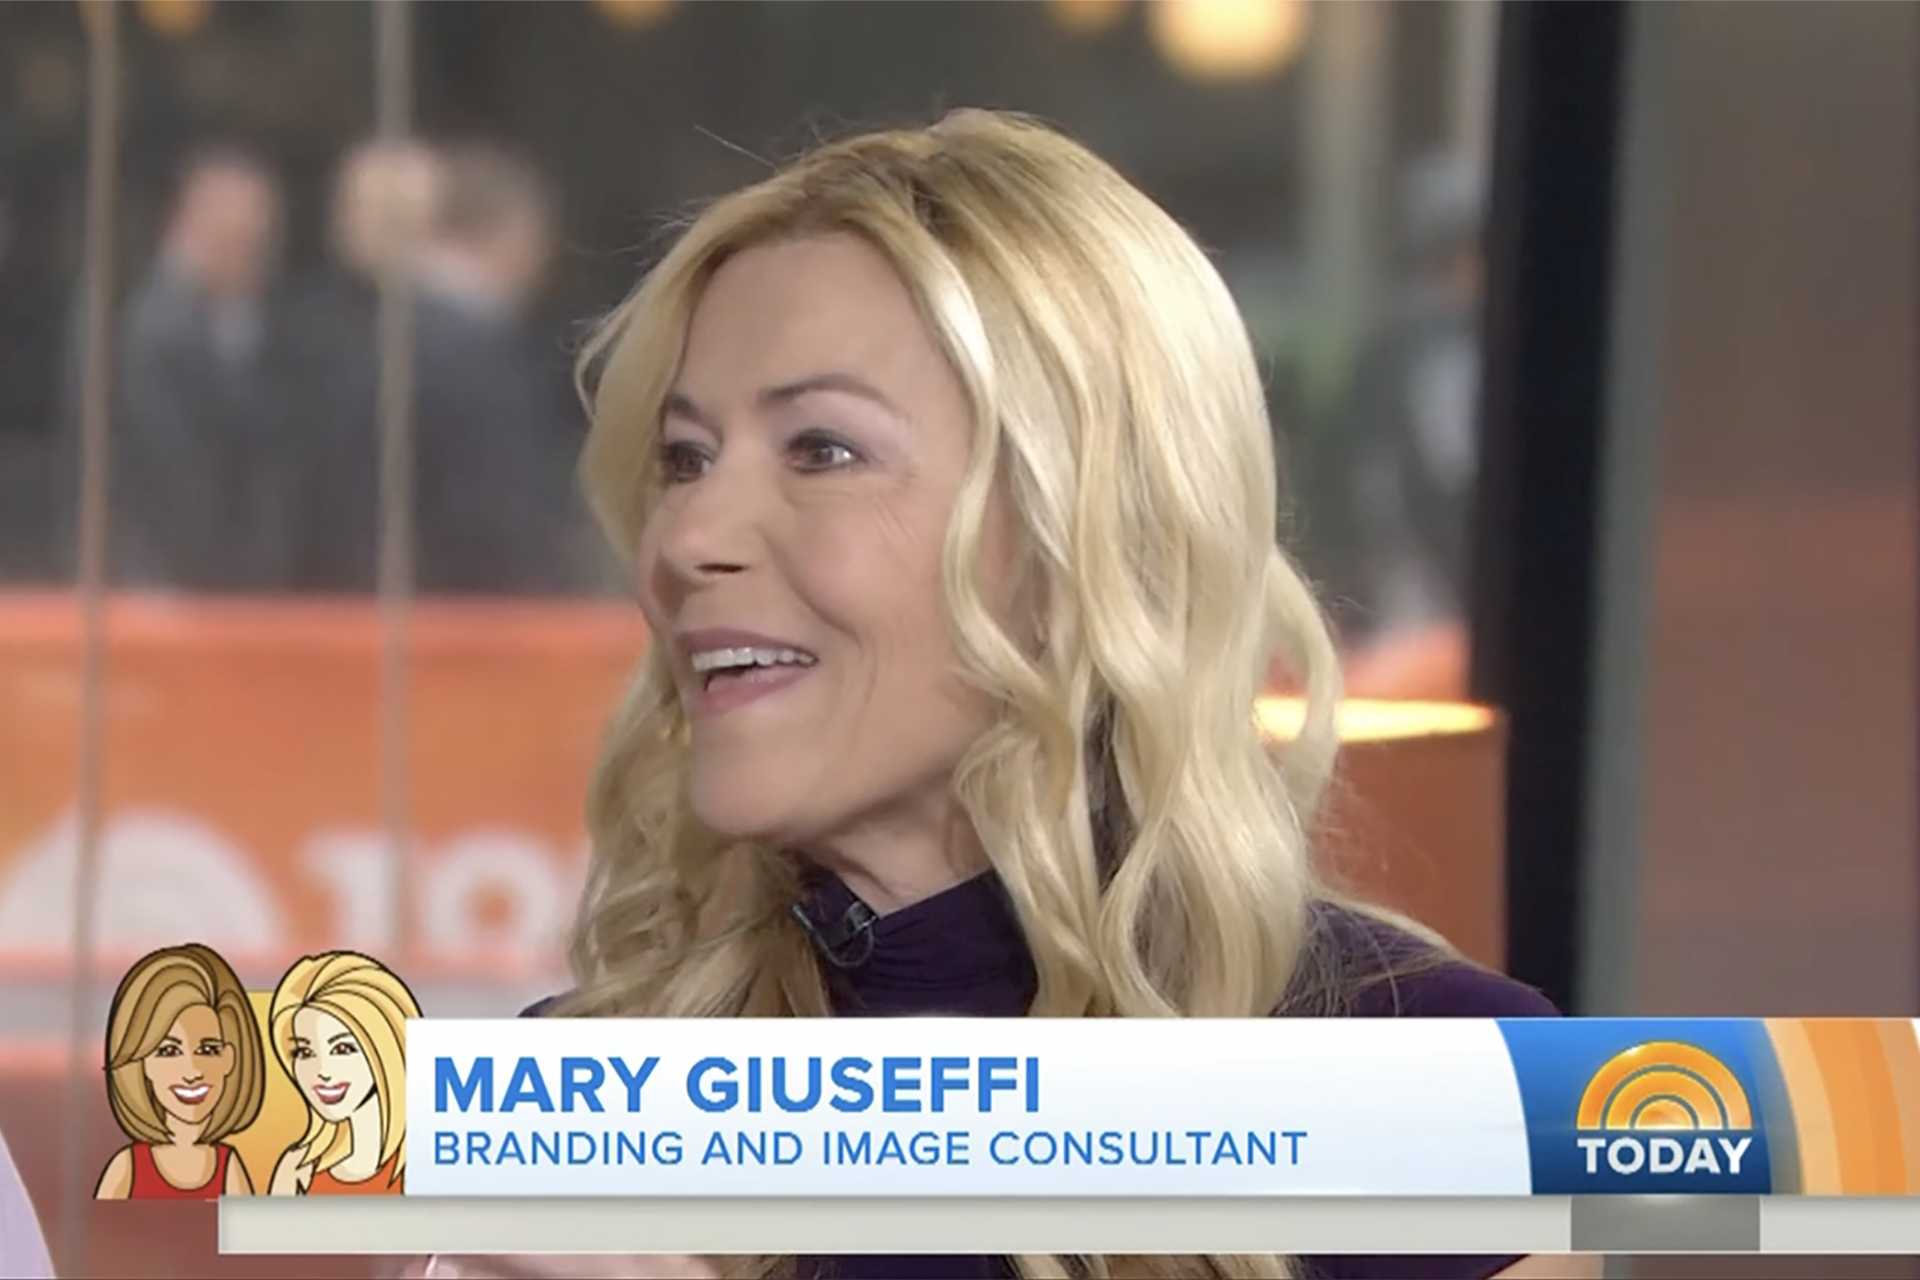 Mary Giuseffi on The Today Show